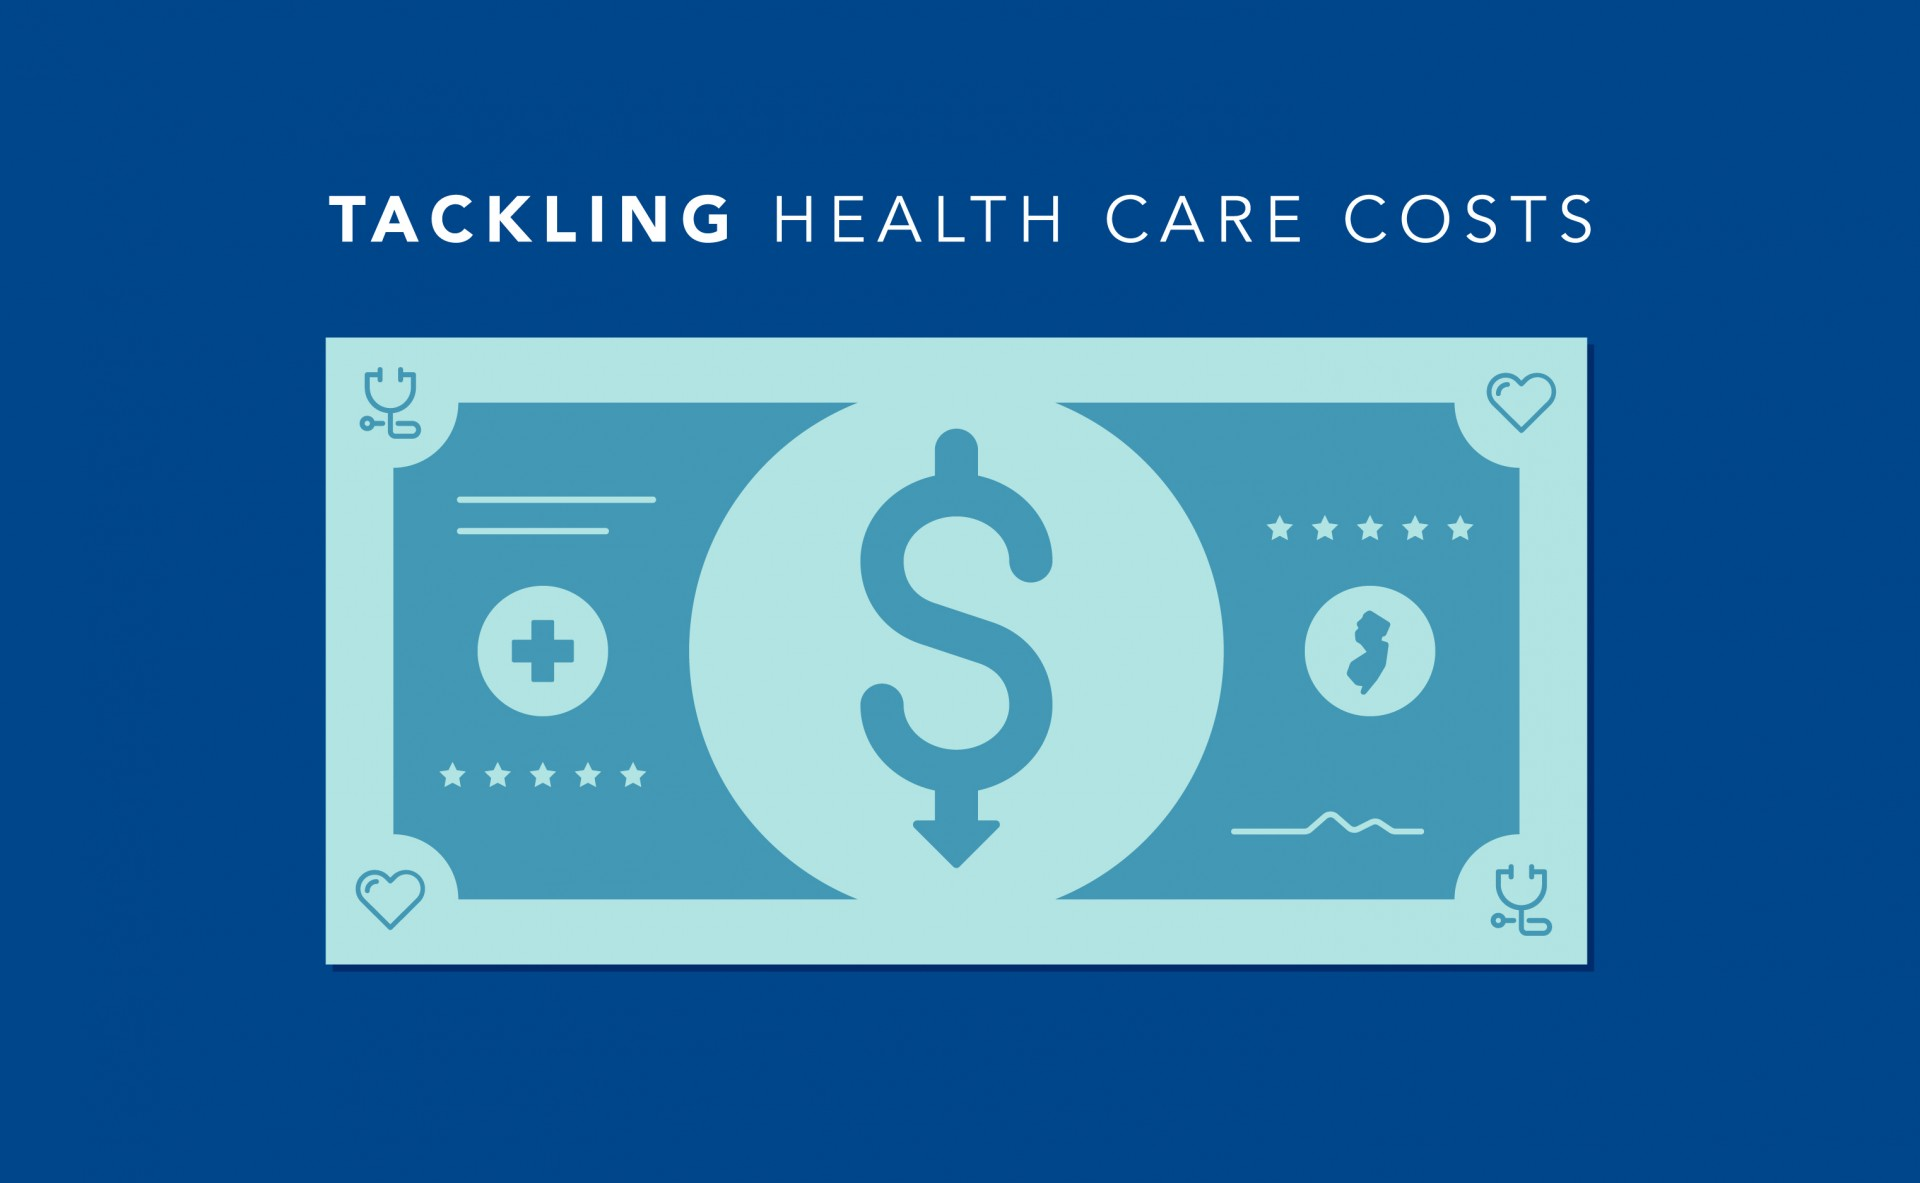 Tackling Health Care Costs